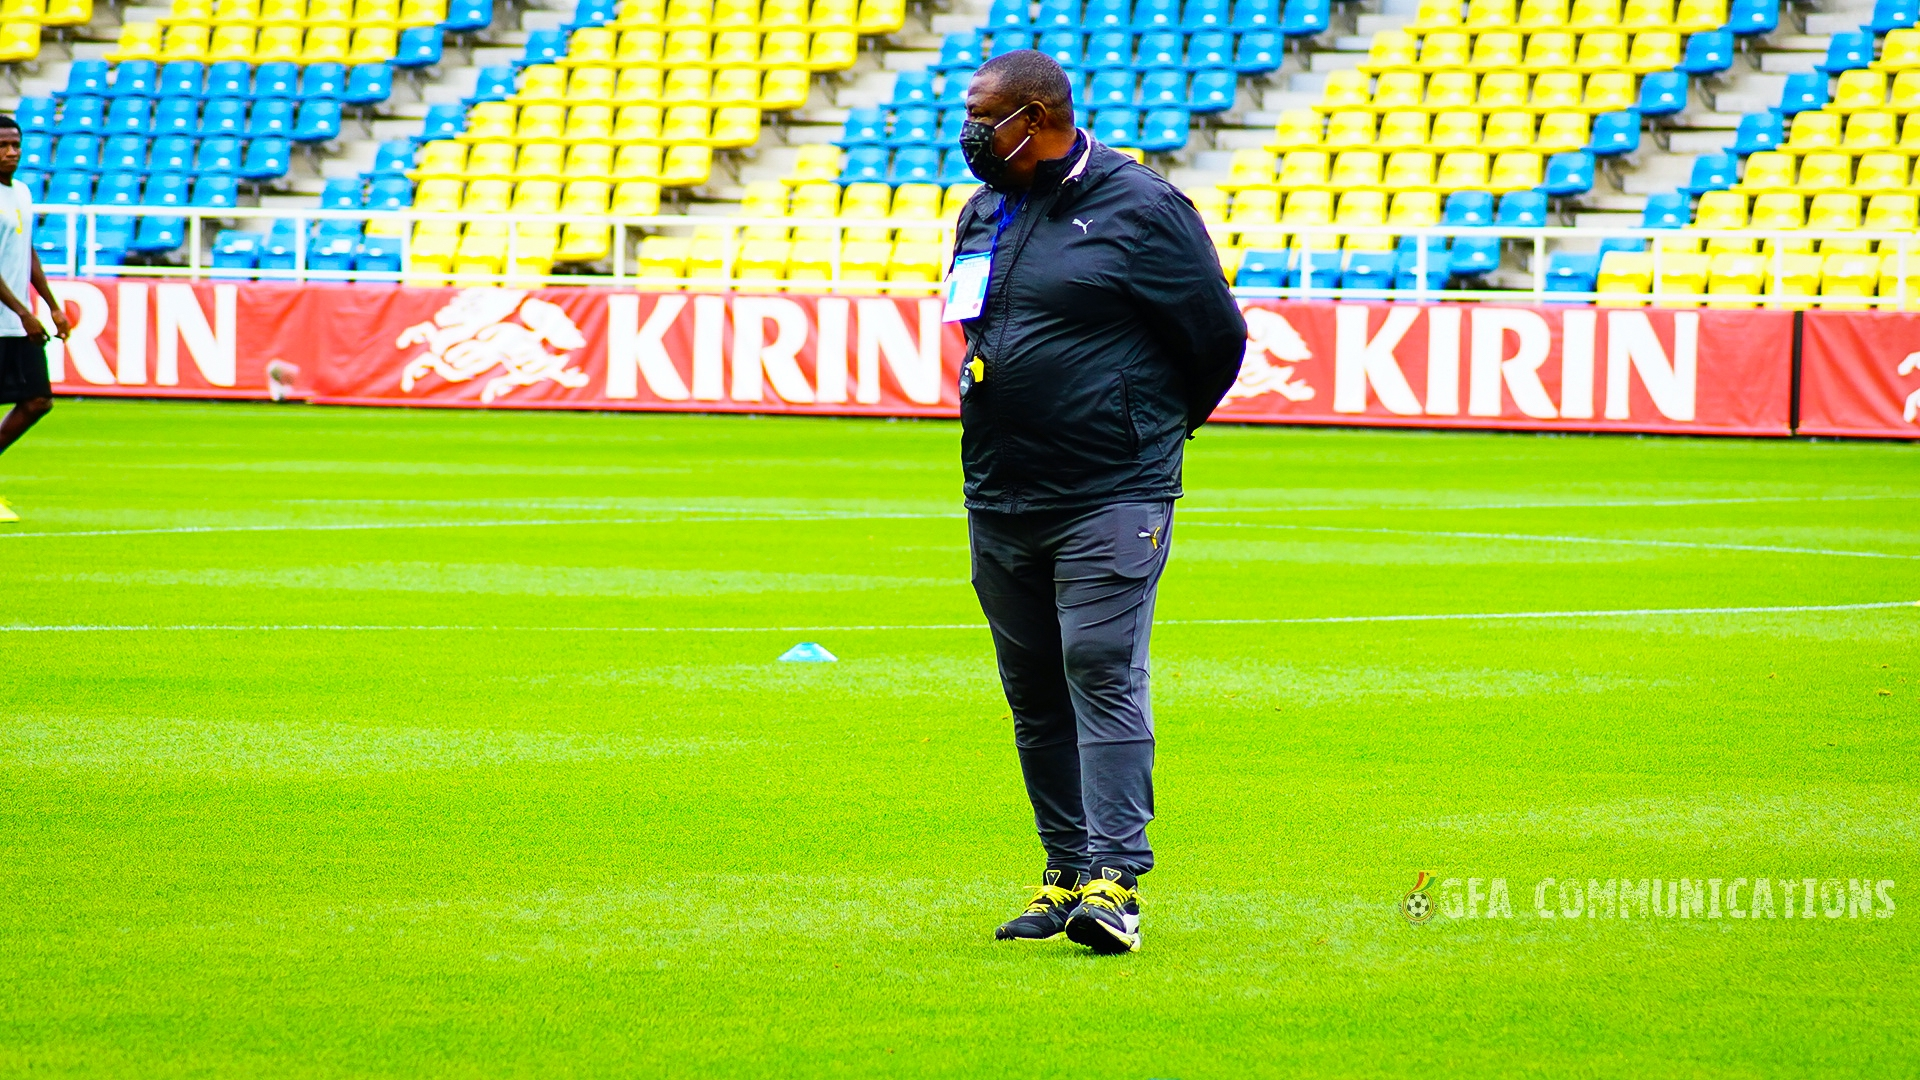 Japan friendly gives chance for assessment – Coach Fabin